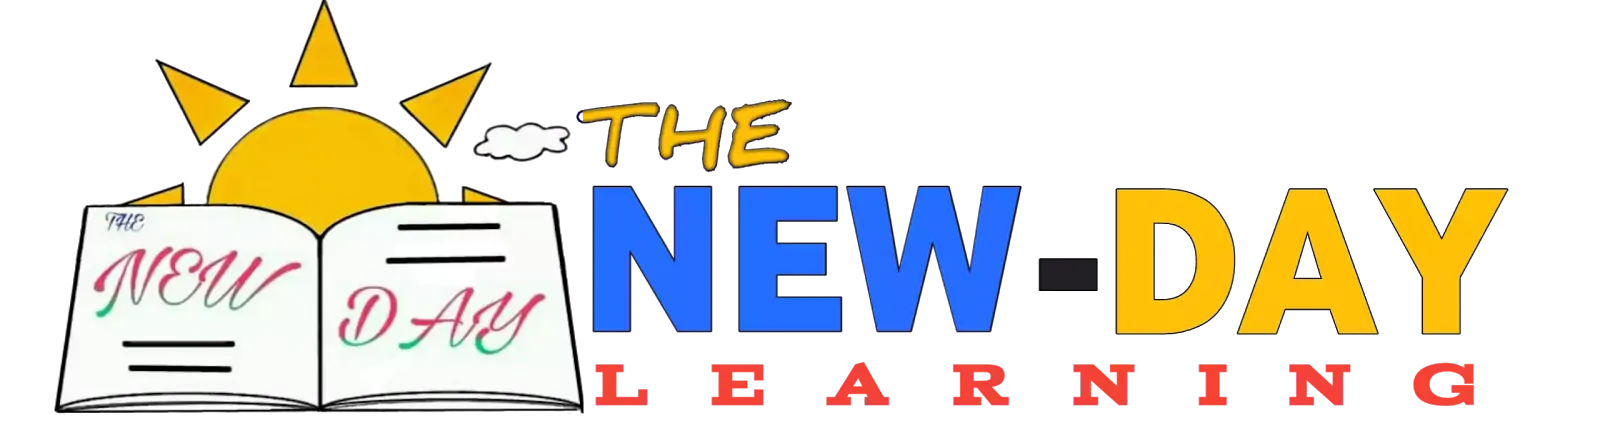 The New-day Learning